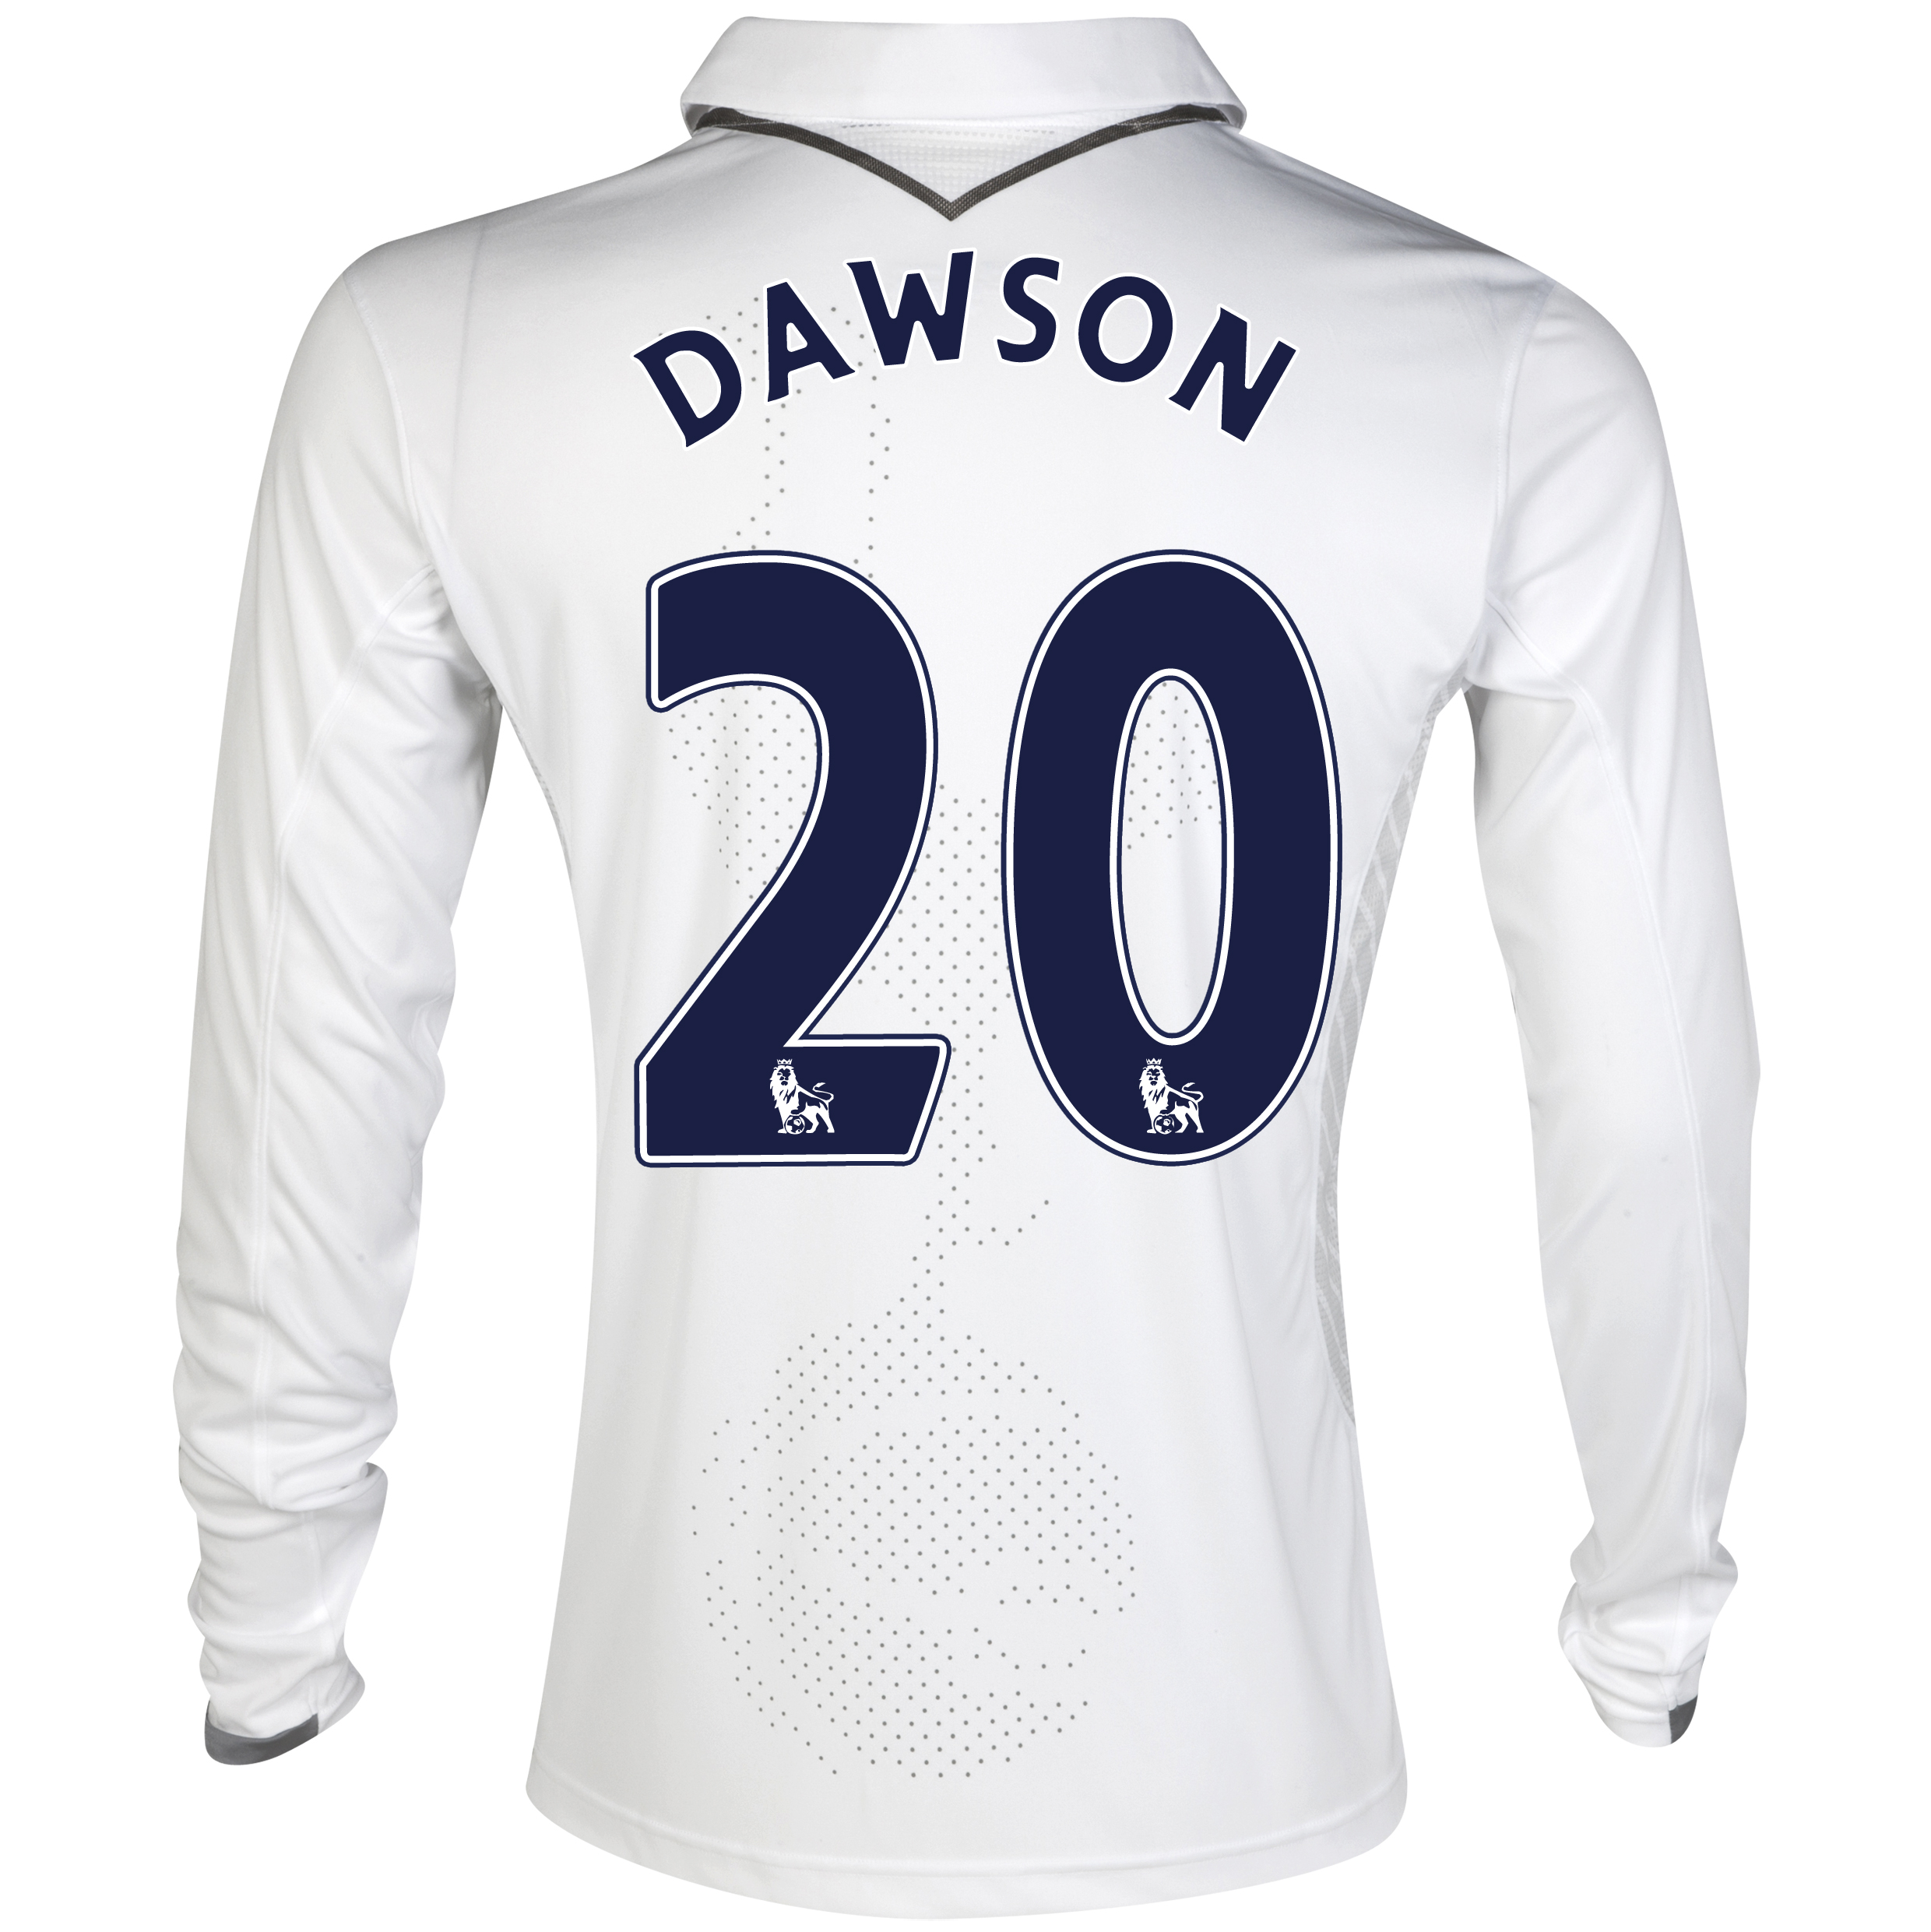 Tottenham Hotspur Home Shirt 2012/13 - Long Sleeve with Dawson 20 printing